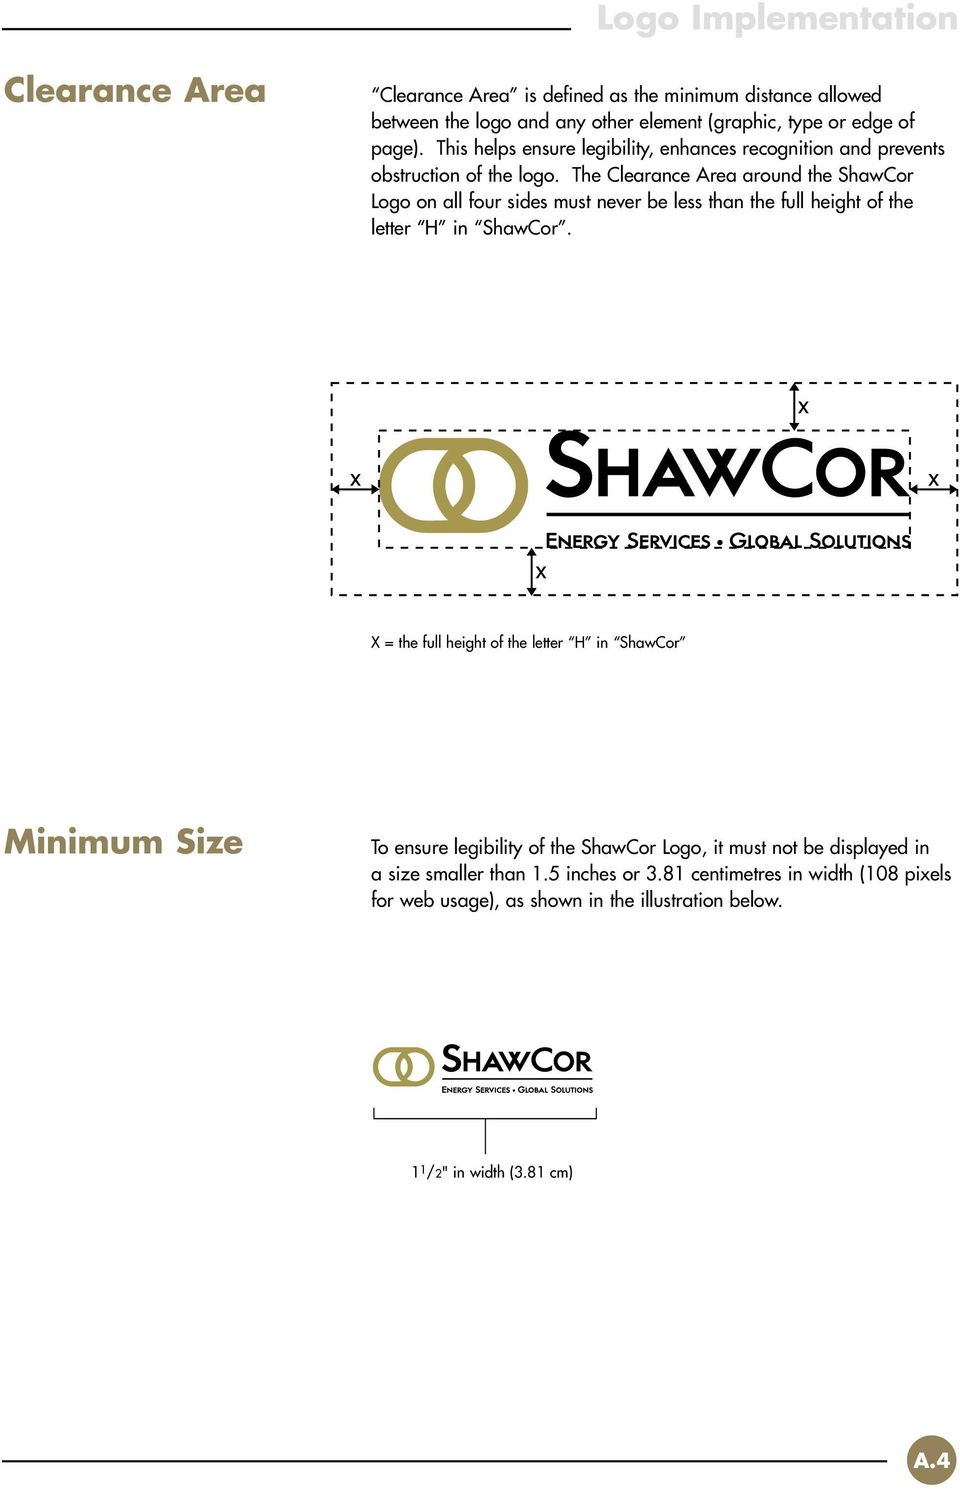 The Clearance Area around the ShawCor Logo on all four sides must never be less than the full height of the letter H in ShawCor.